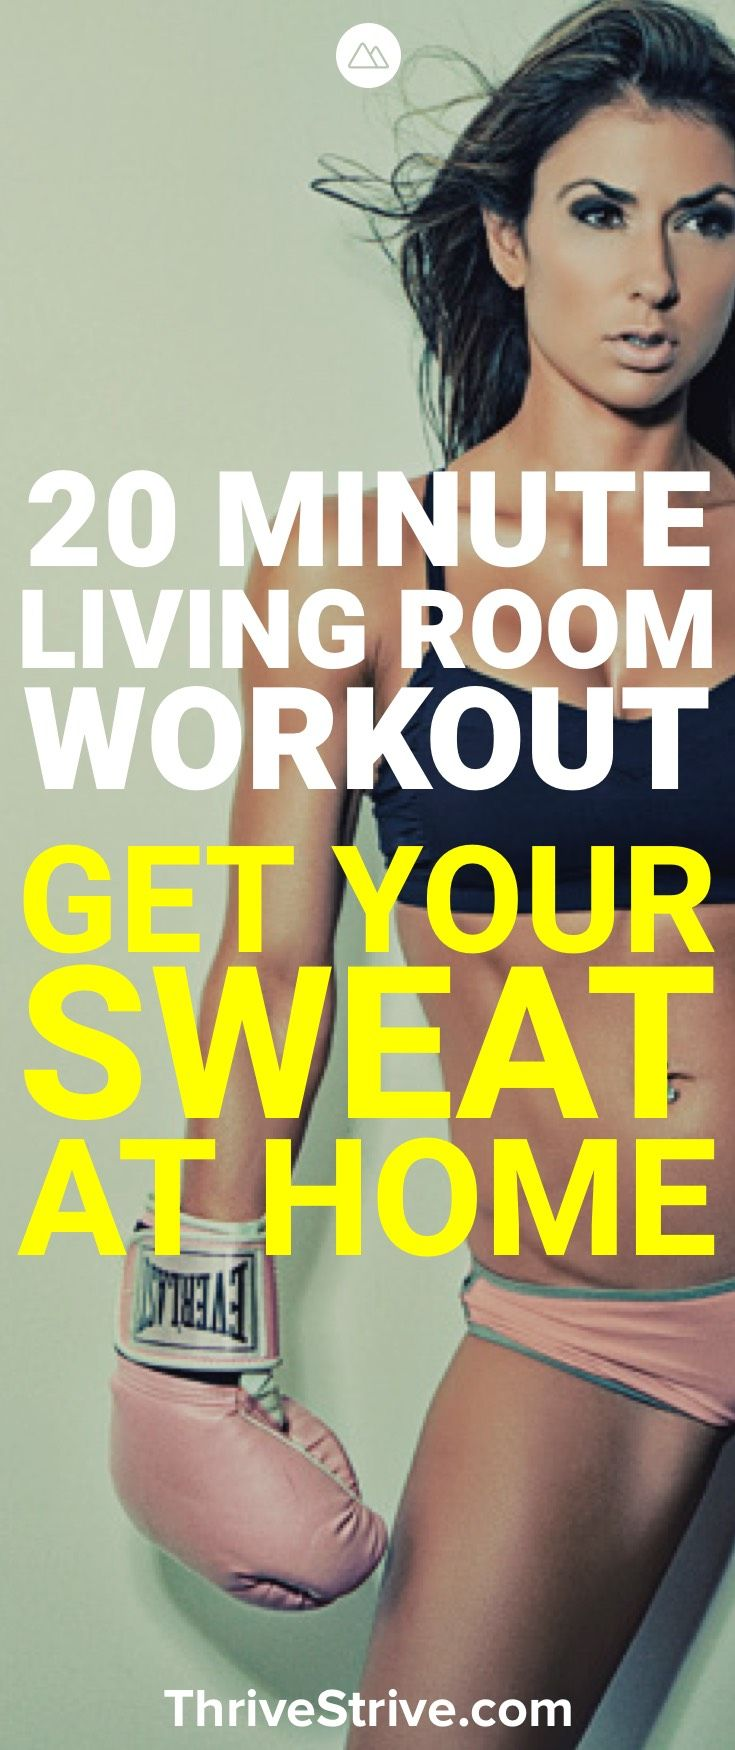 Best 25 Living Room Workout Ideas On Pinterest No Equipment Workout Circuit Workout Routines